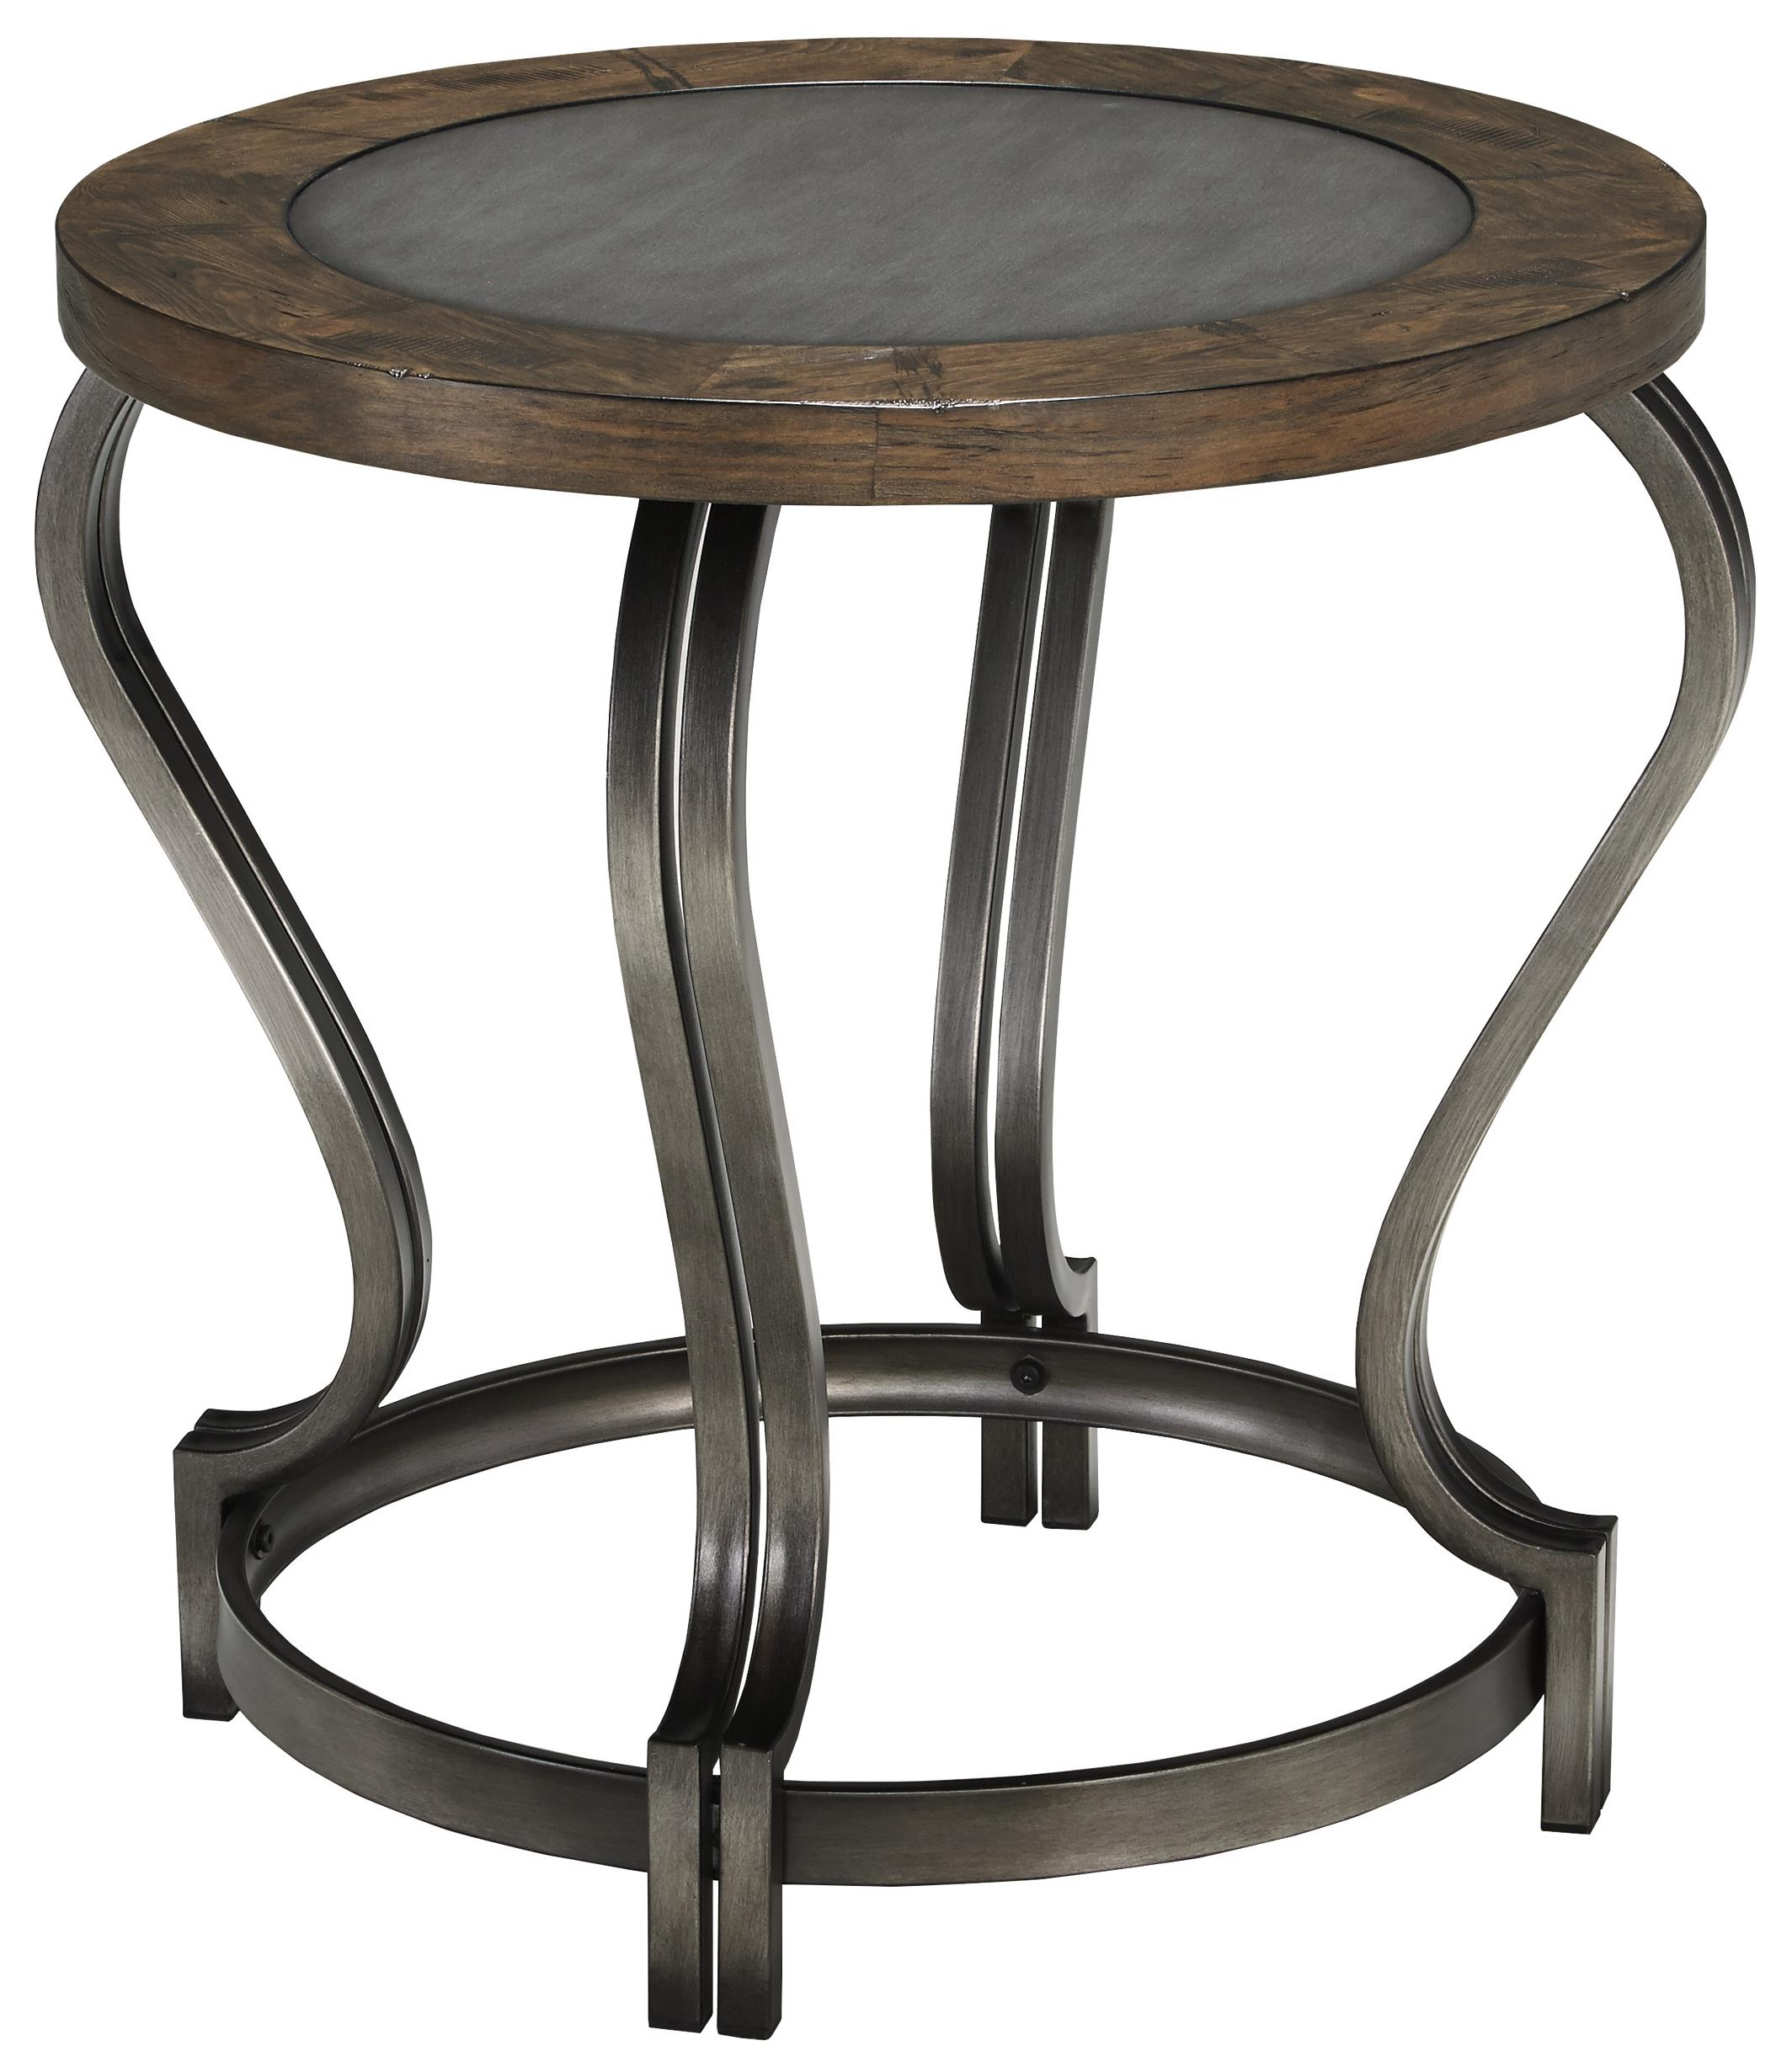 Signature Design by Ashley Volanta Round End Table - Item Number: T739-6